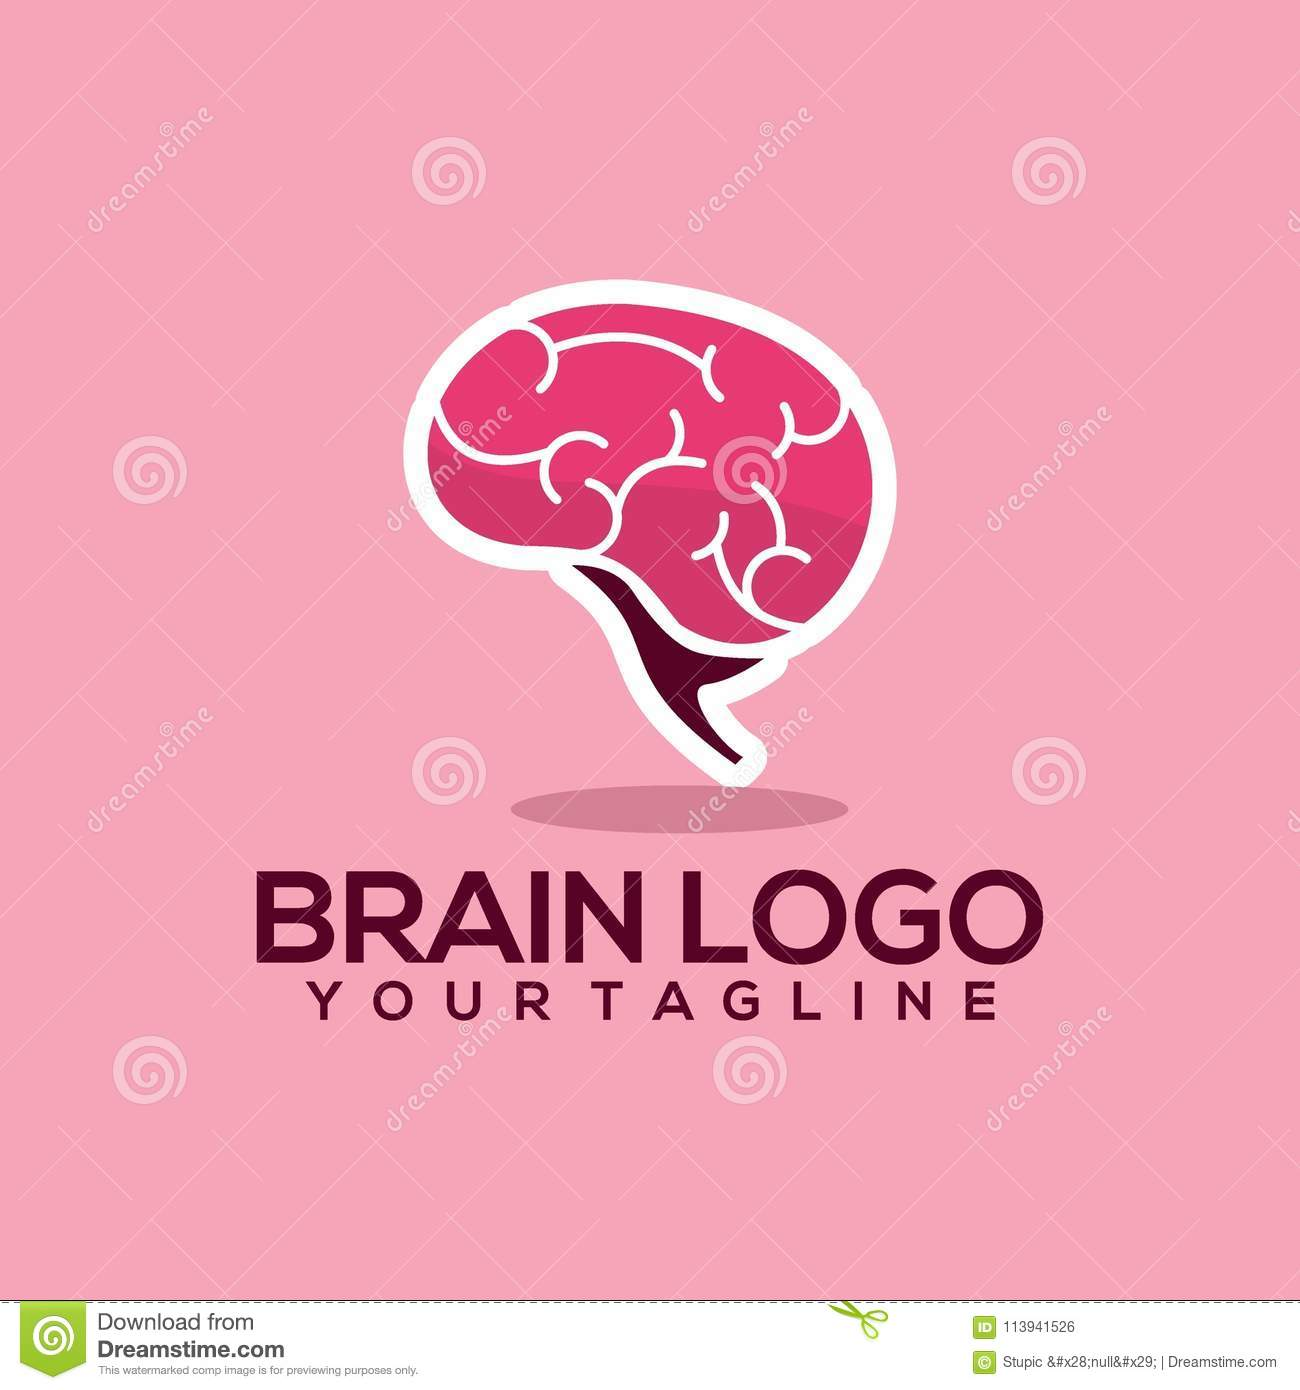 Creative Brain Logo Design For Various Used And Purposed Just You The Great People